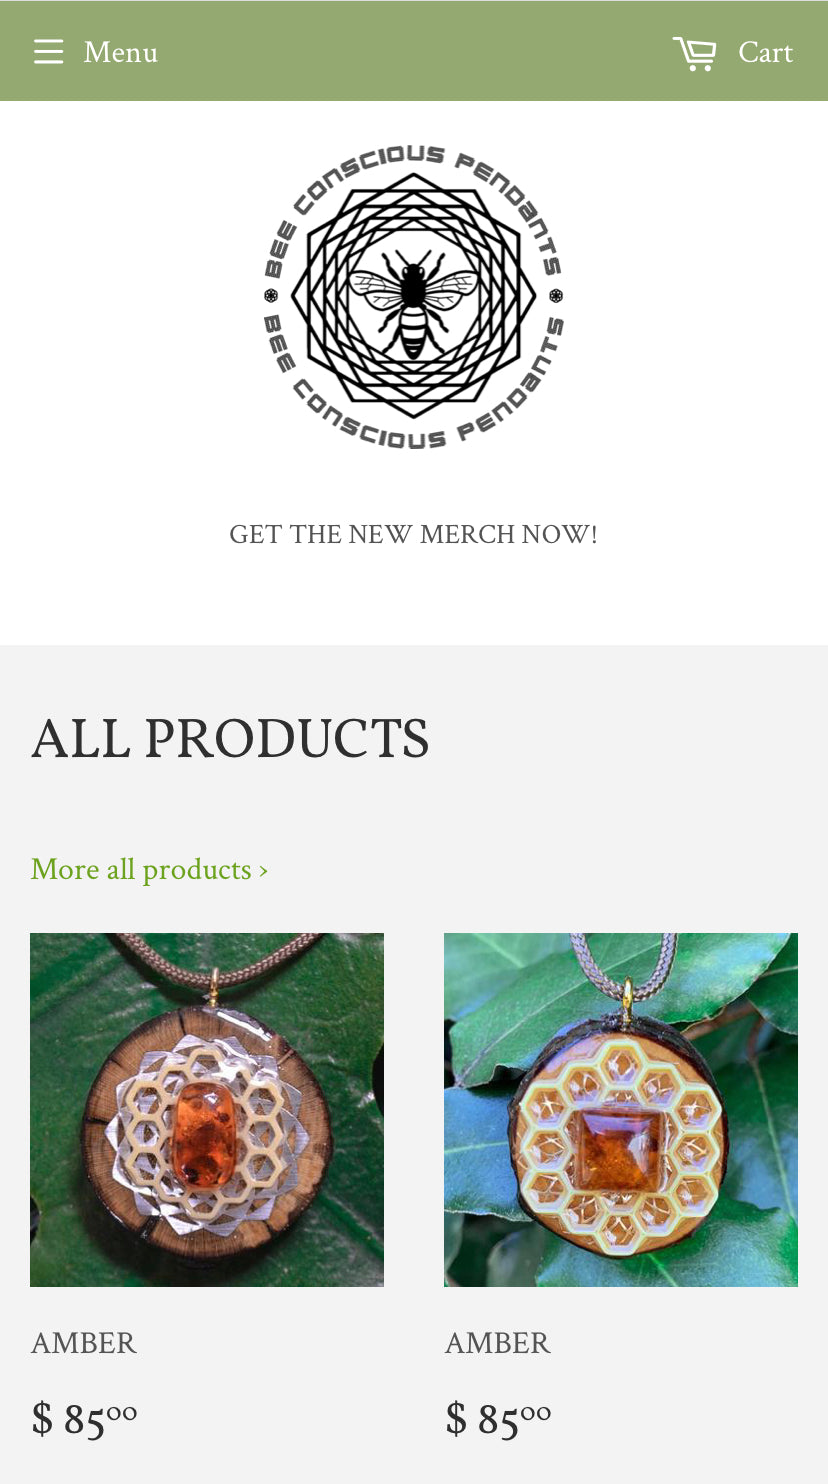 BEE CONSCIOUS PENDANTS Screenshot - 5